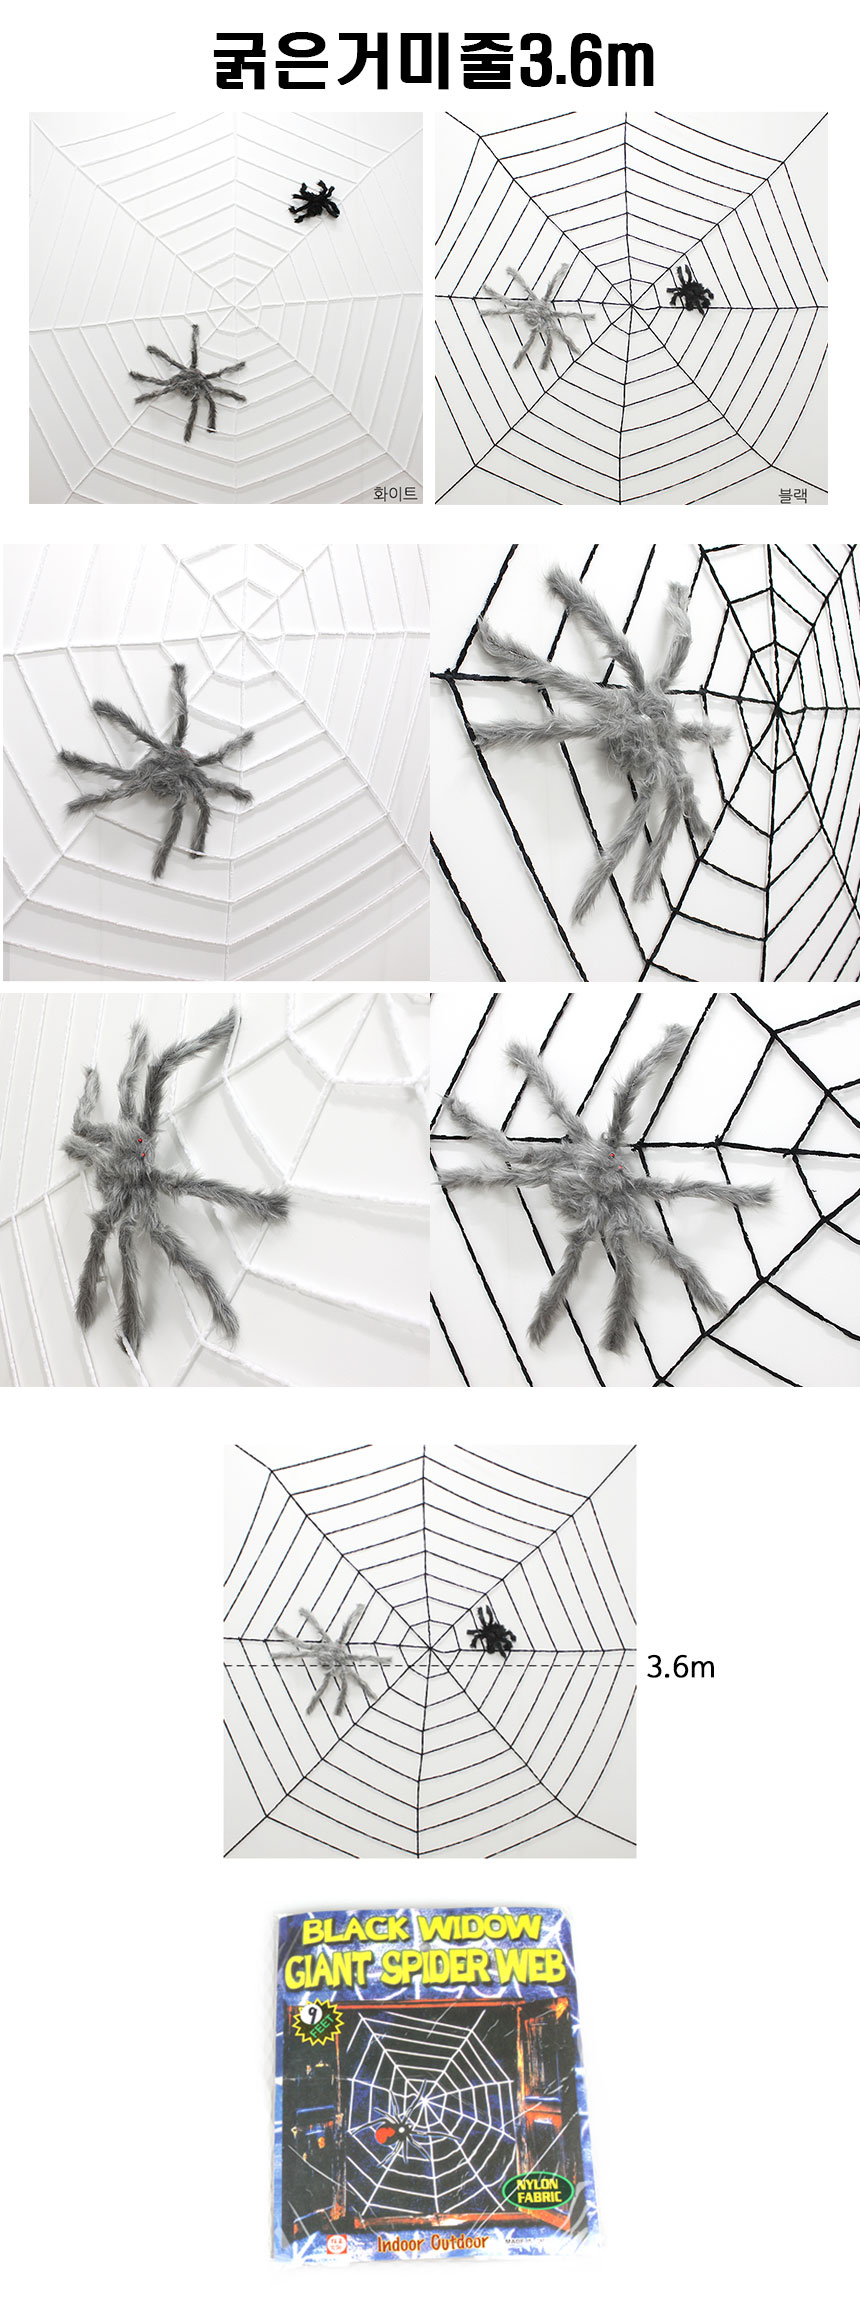 http://partyb2b.mireene.kr/img/party/Halloween/spiderweb3.6m.jpg